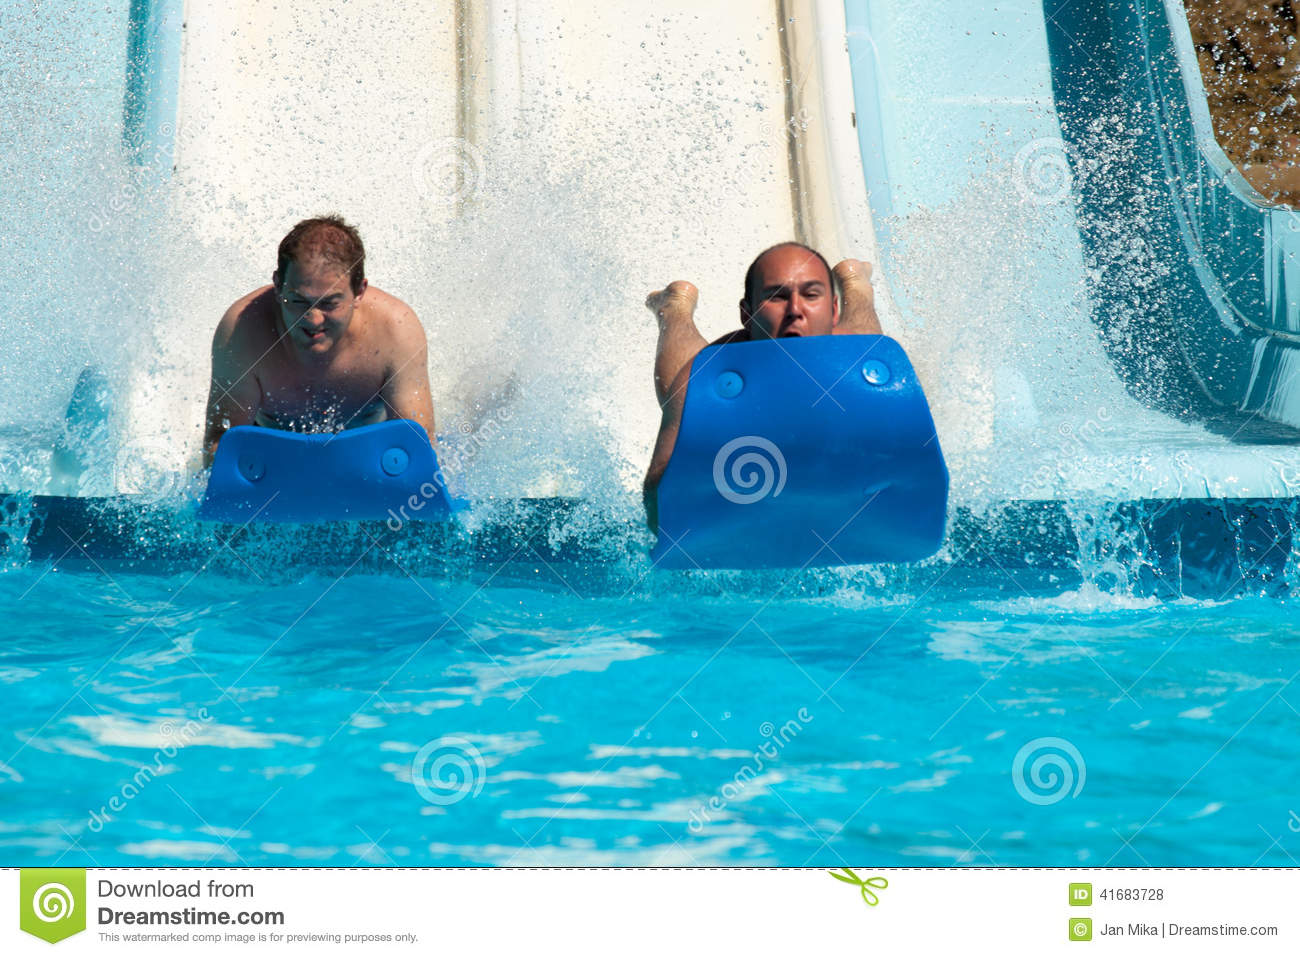 Adults in the water